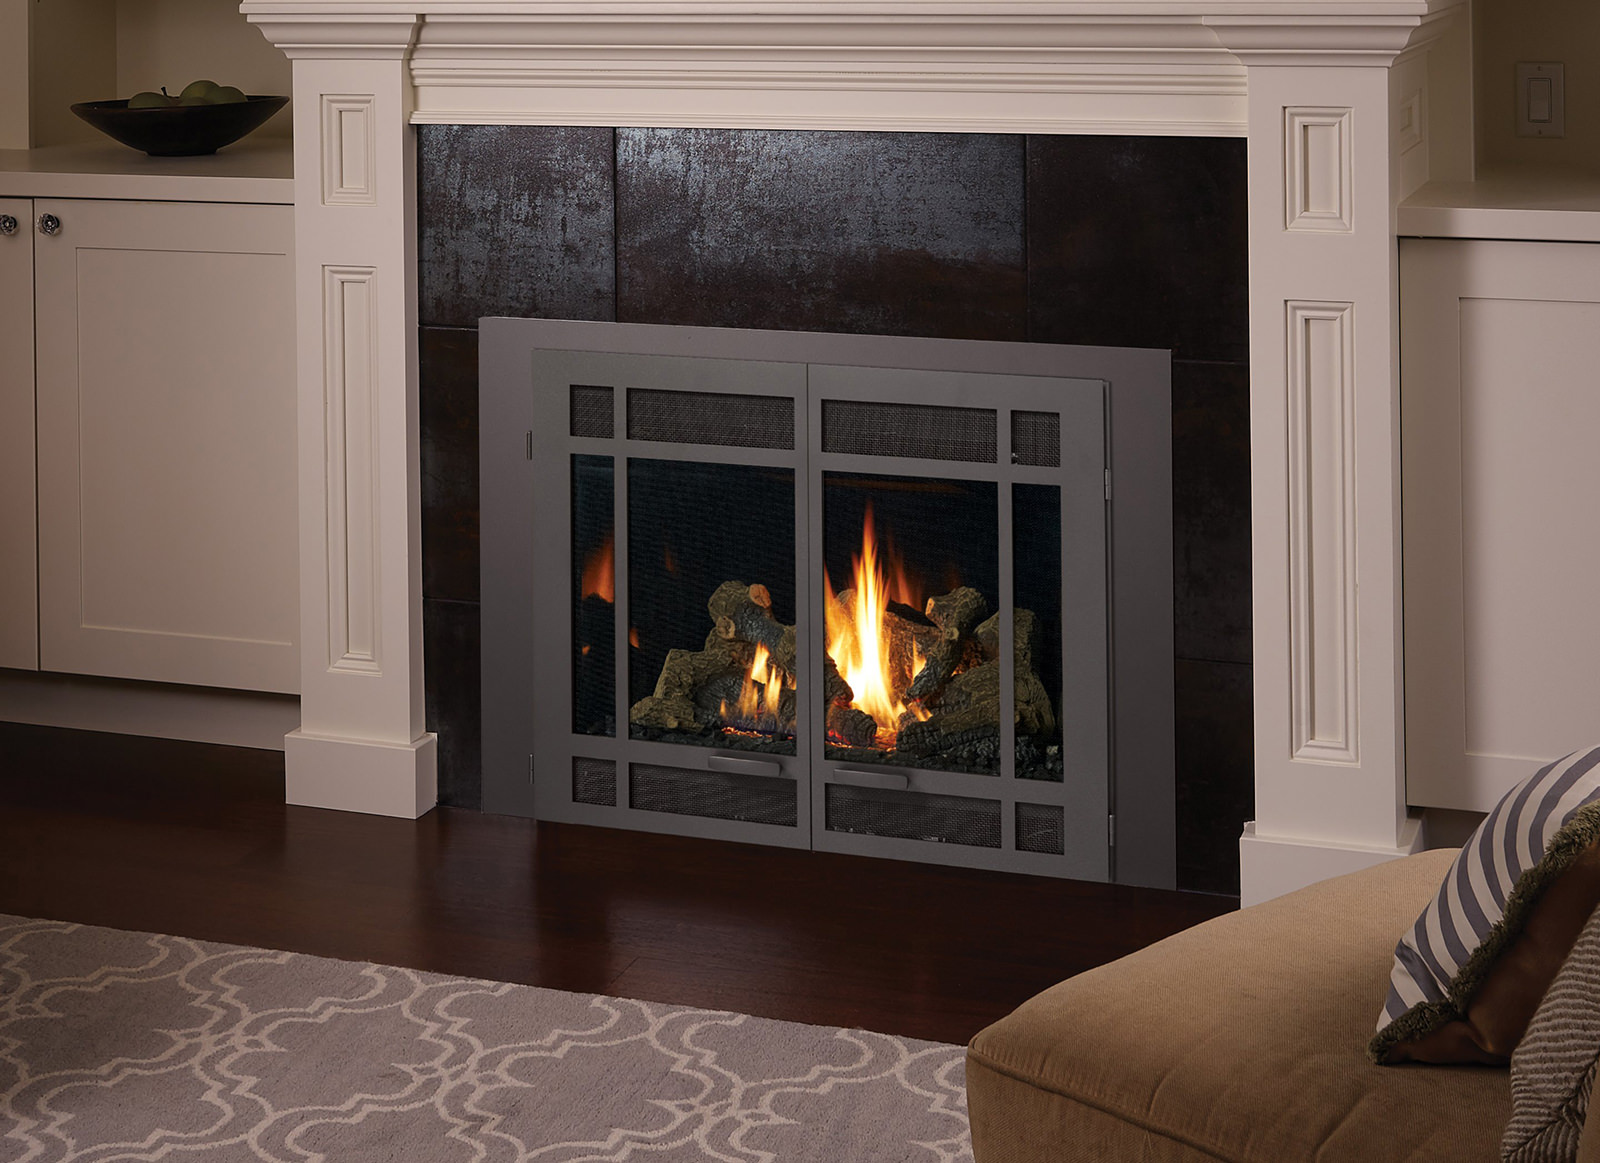 Fireplace Insert With Double Doors Fireplaces